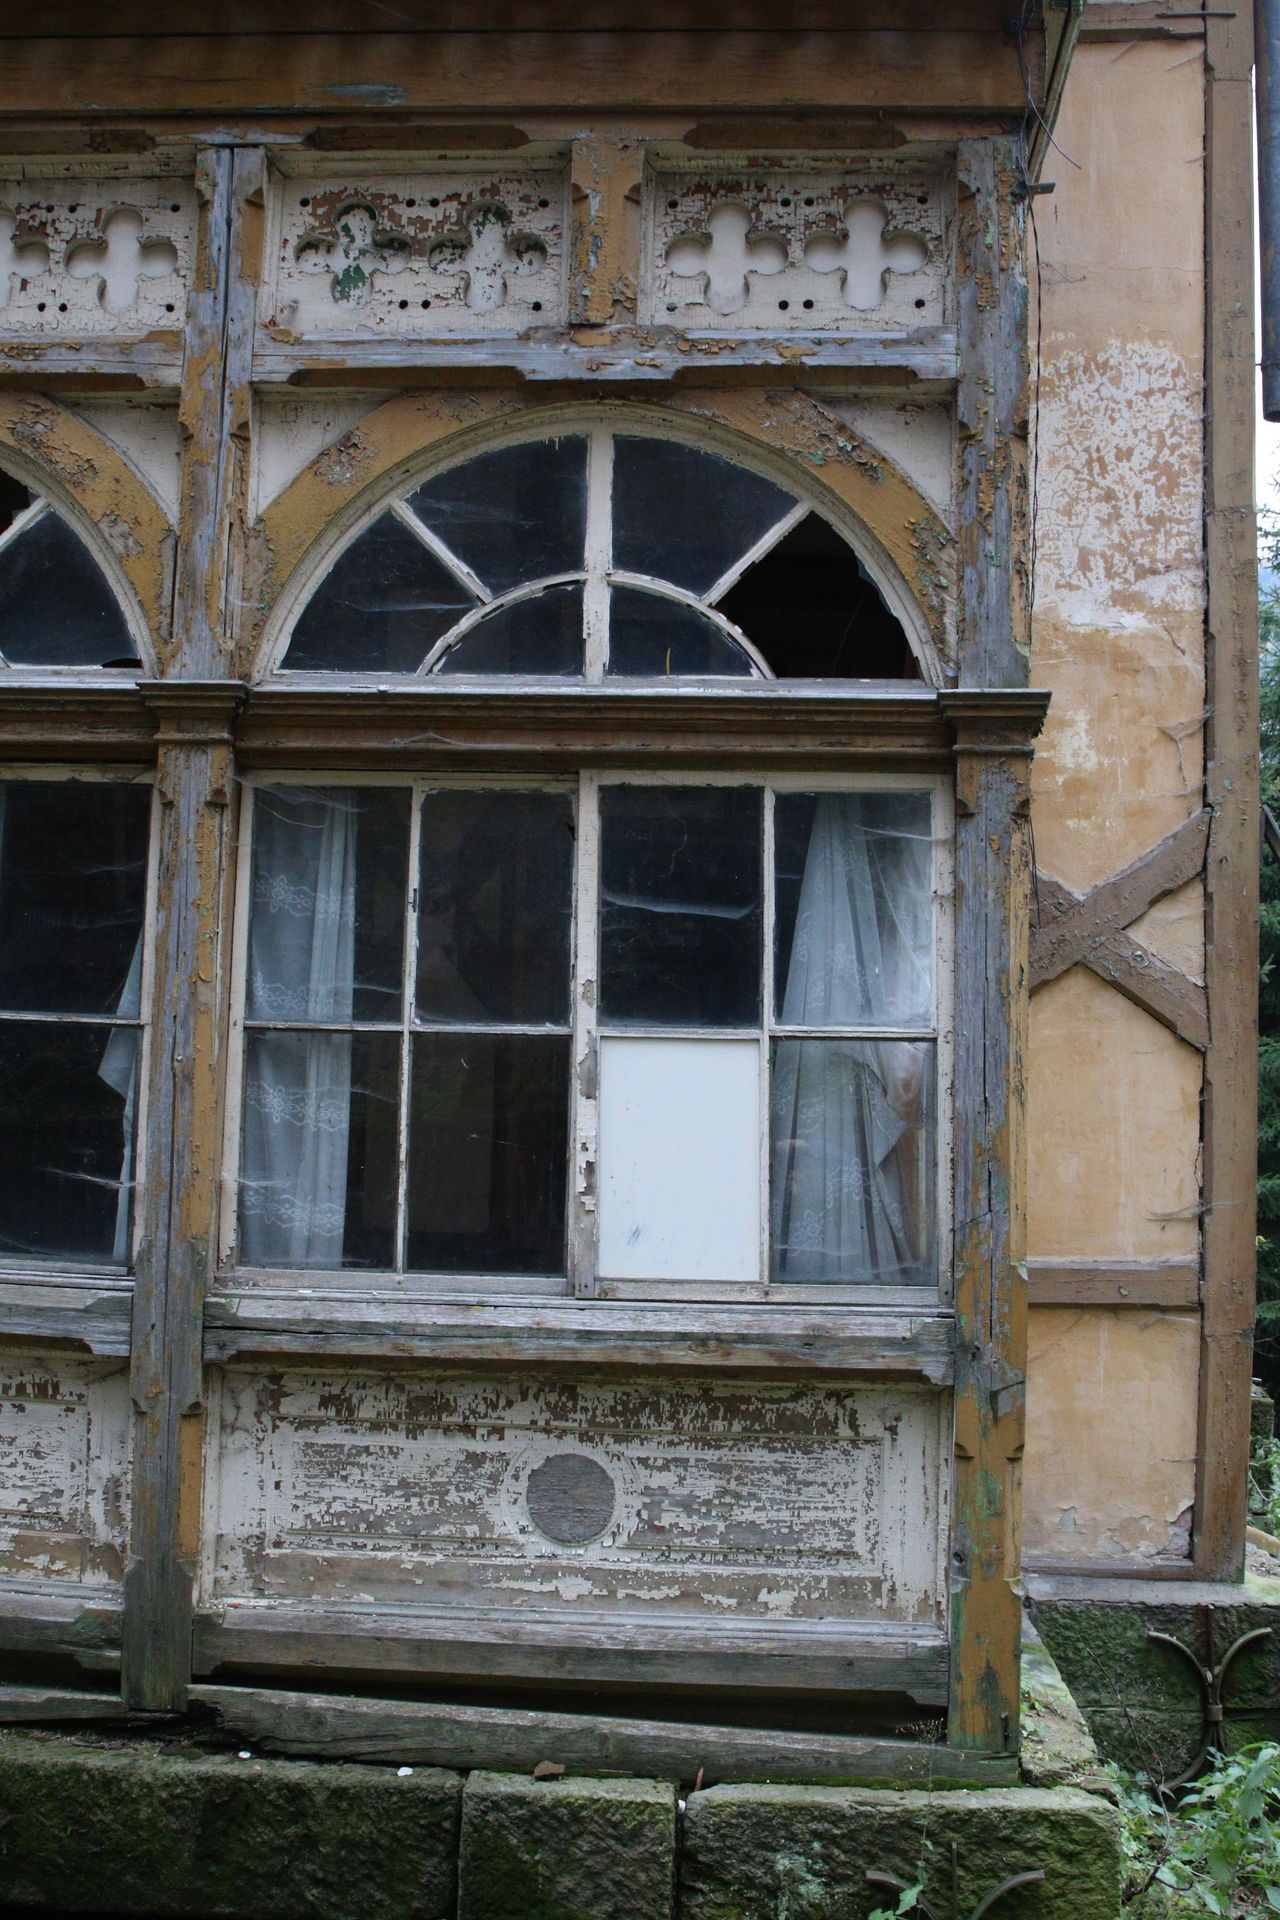 Abandoned Abandoned Places Architecture Building Exterior Built Structure Close-up Day No People Outdoors Window